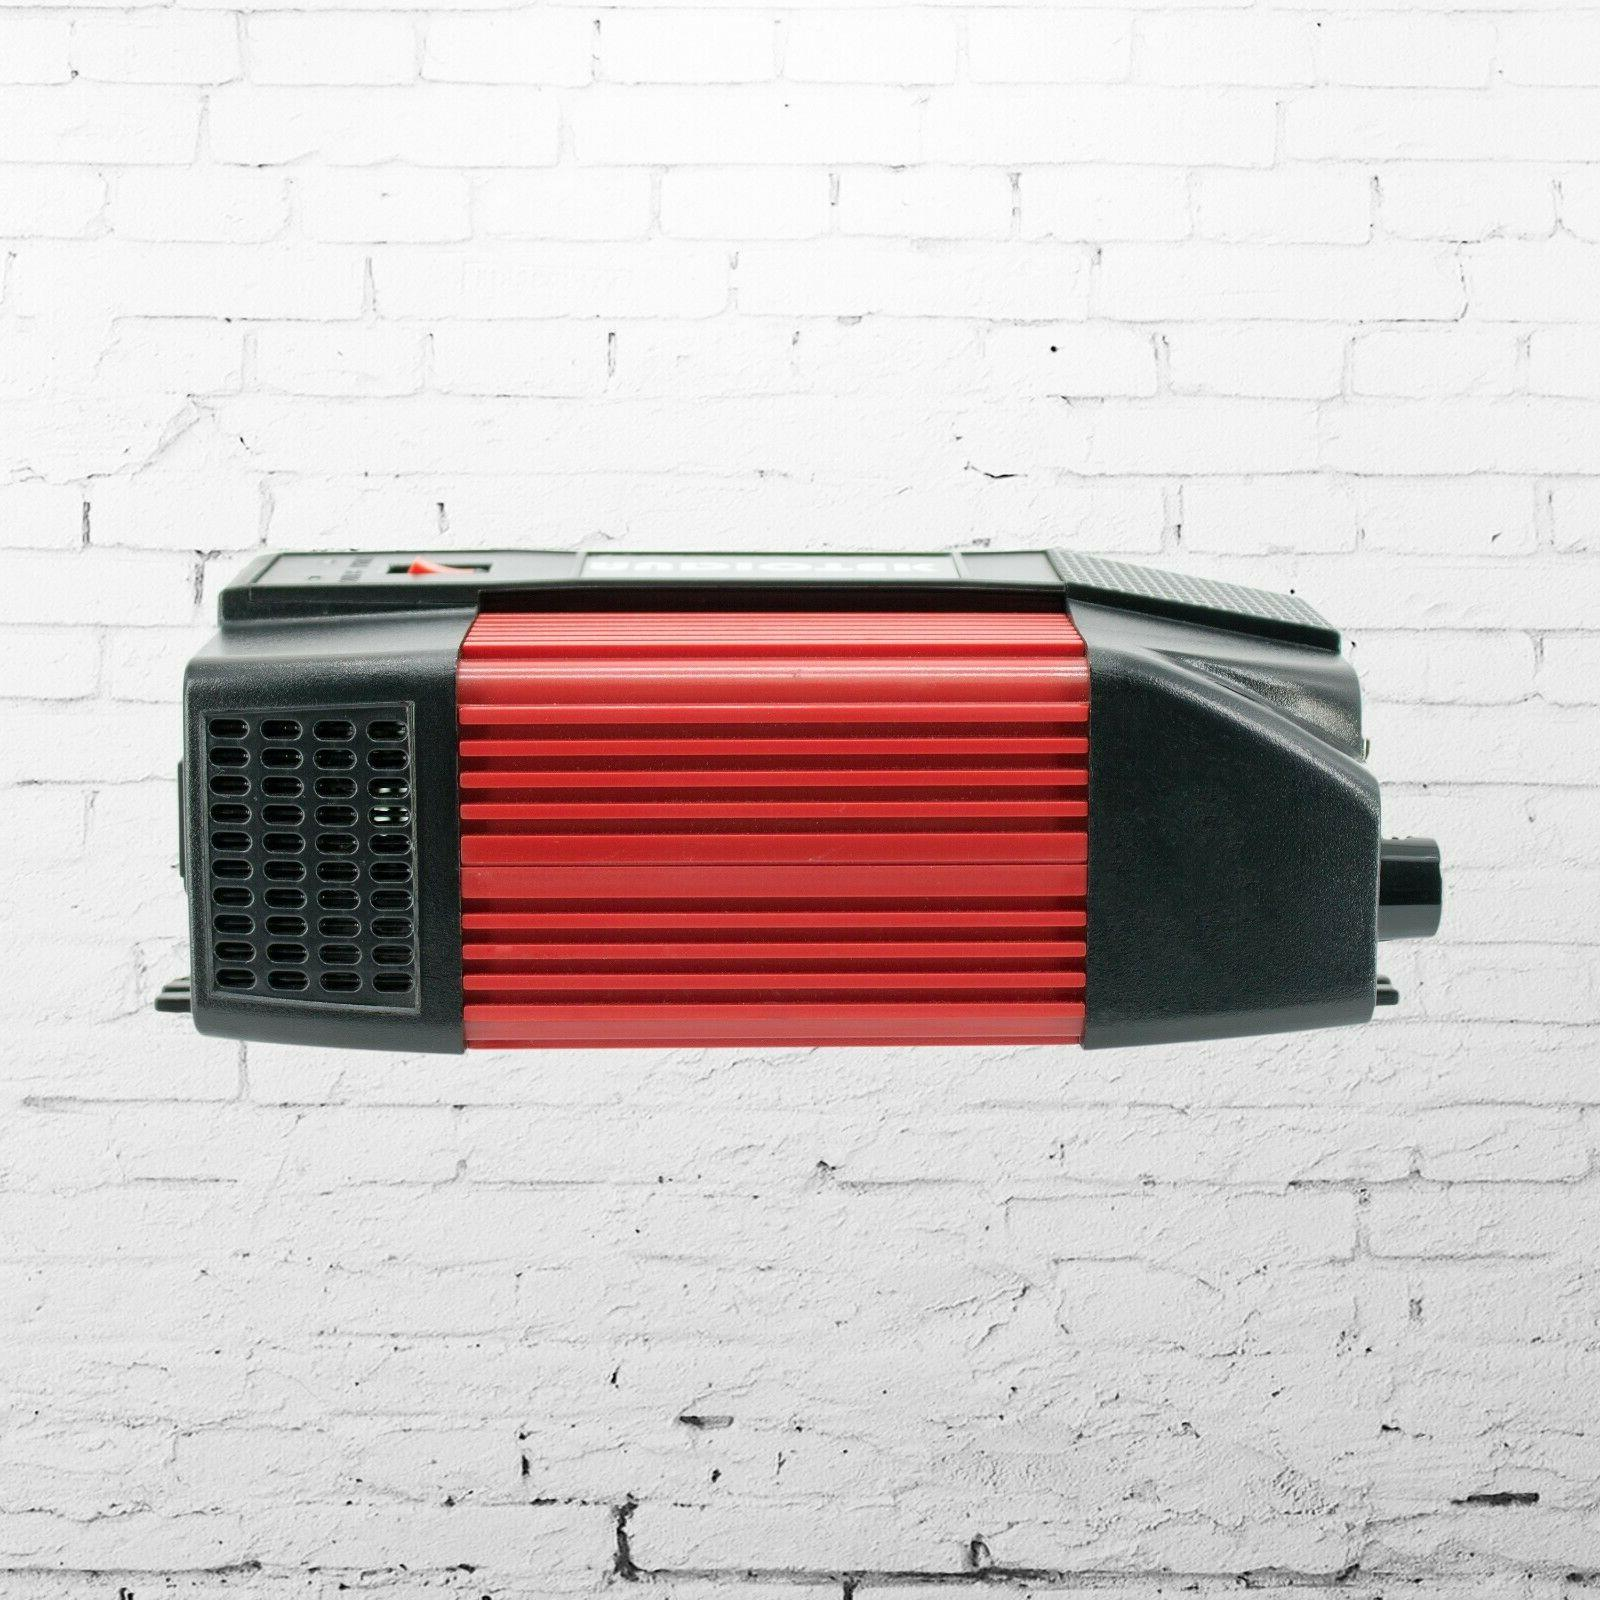 Audiotek 2000W Watt Inverter DC 110V Car port